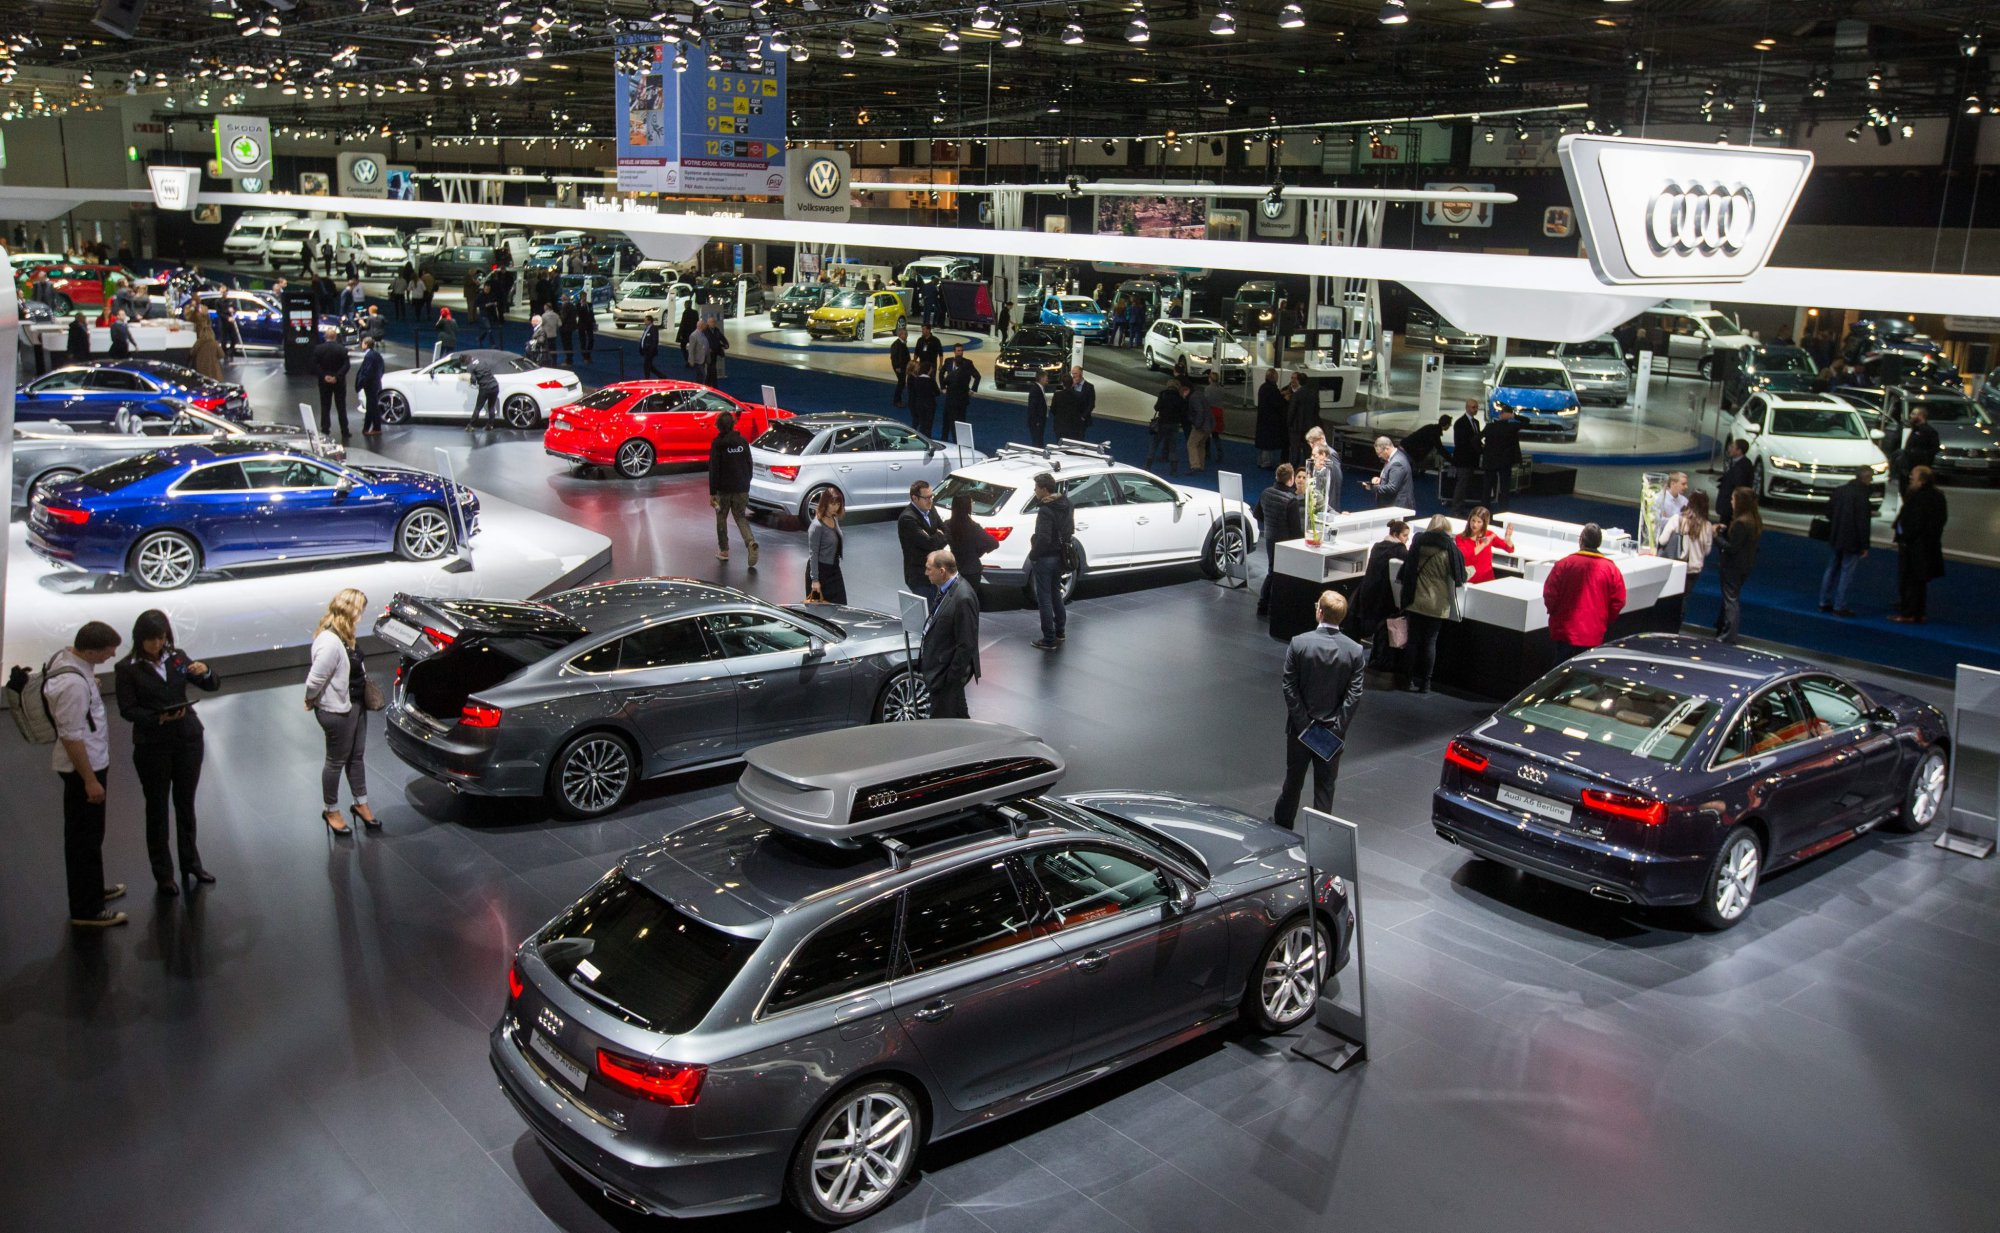 epa05715050 An elevated view of the Audi showroom at the Brussels Motor Show in Brussels, Belgium, 13 January 2017. The motor show will run from 14 to 22 January. EPA/STEPHANIE LECOCQ ORG XMIT: BRU01